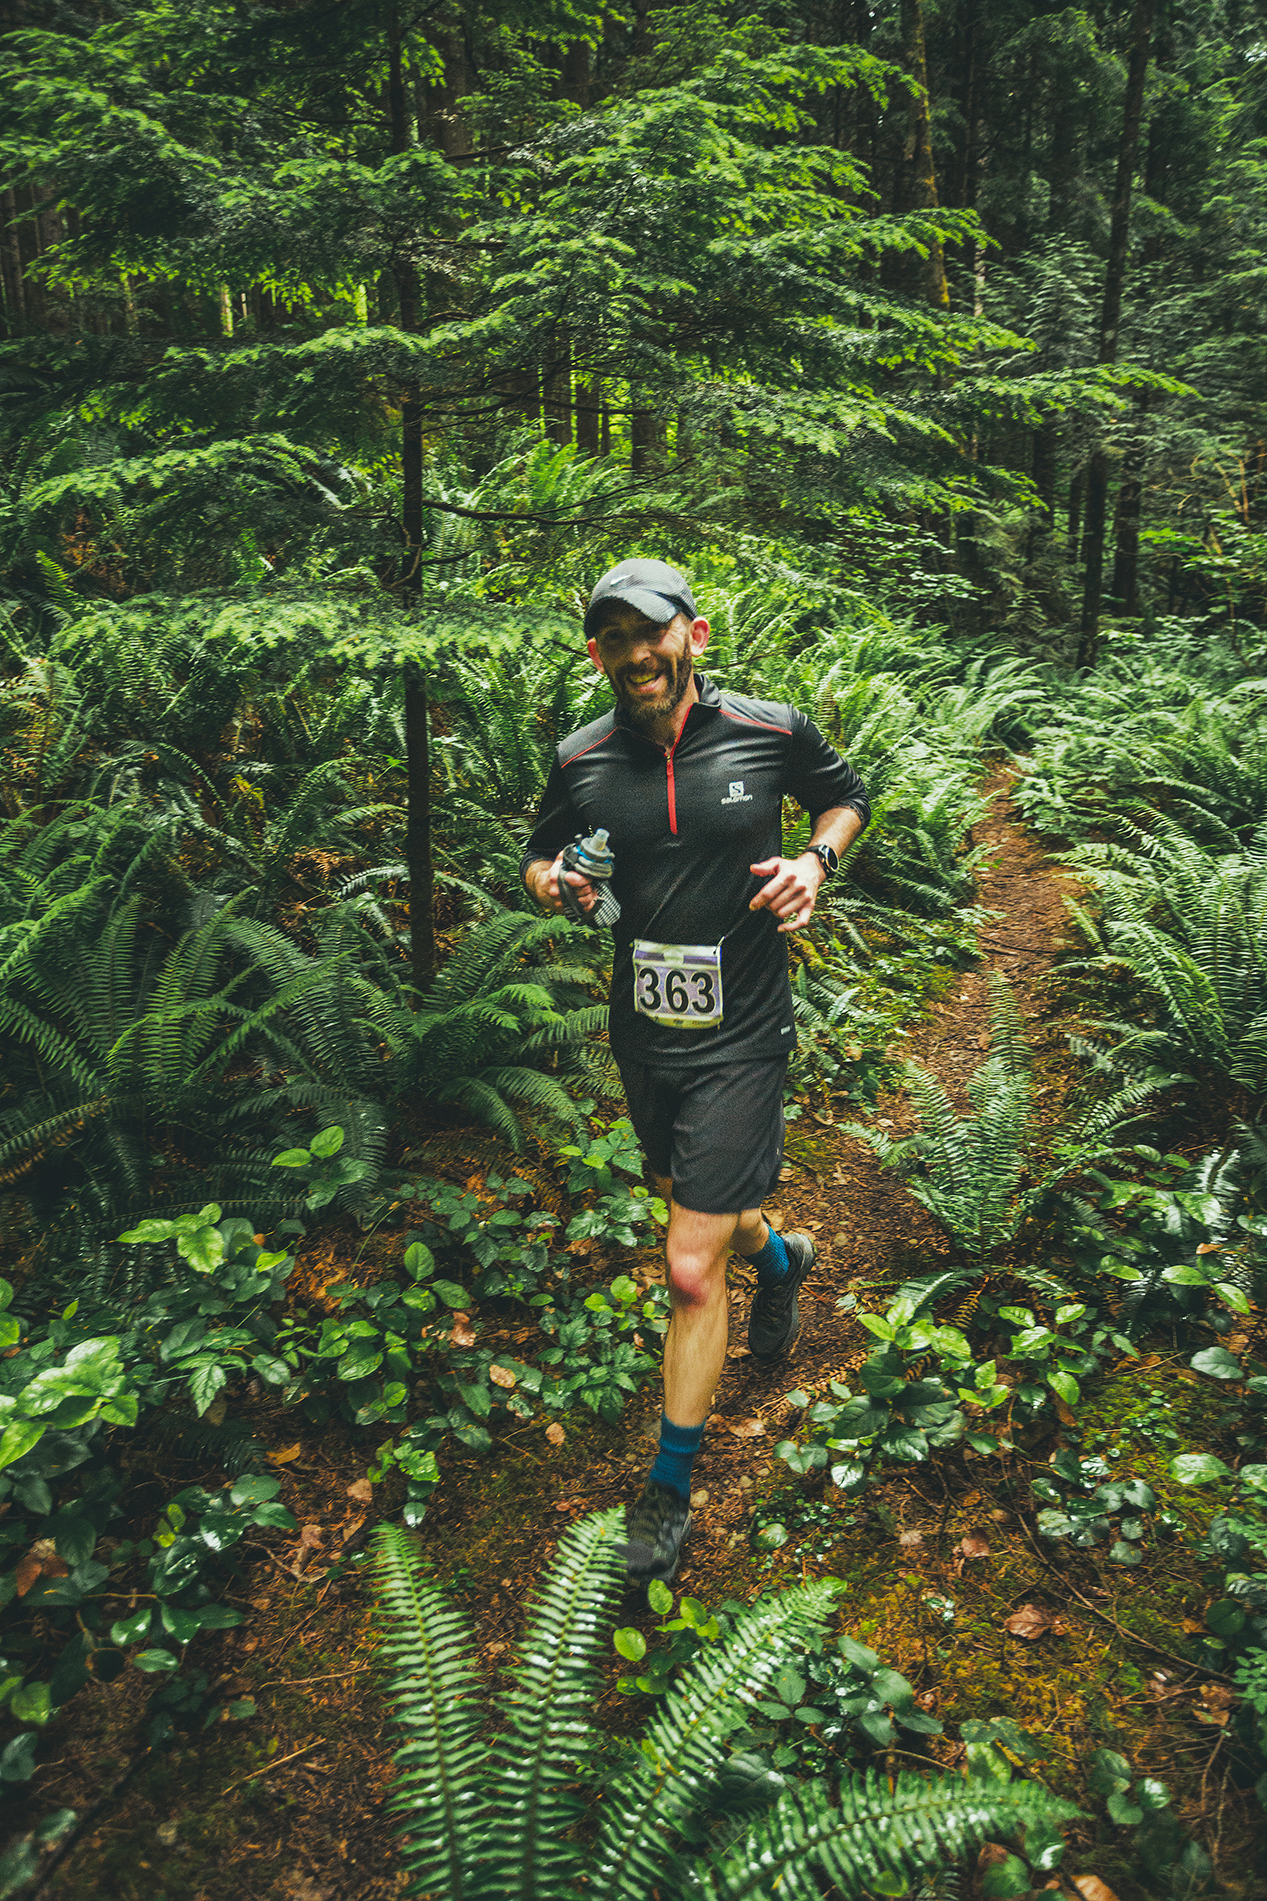 Fraser Valley Trail Races - Bear Mountain - IMG_2982 by Brice Ferre Studio - Vancouver Portrait Adventure and Athlete Photographer.jpg